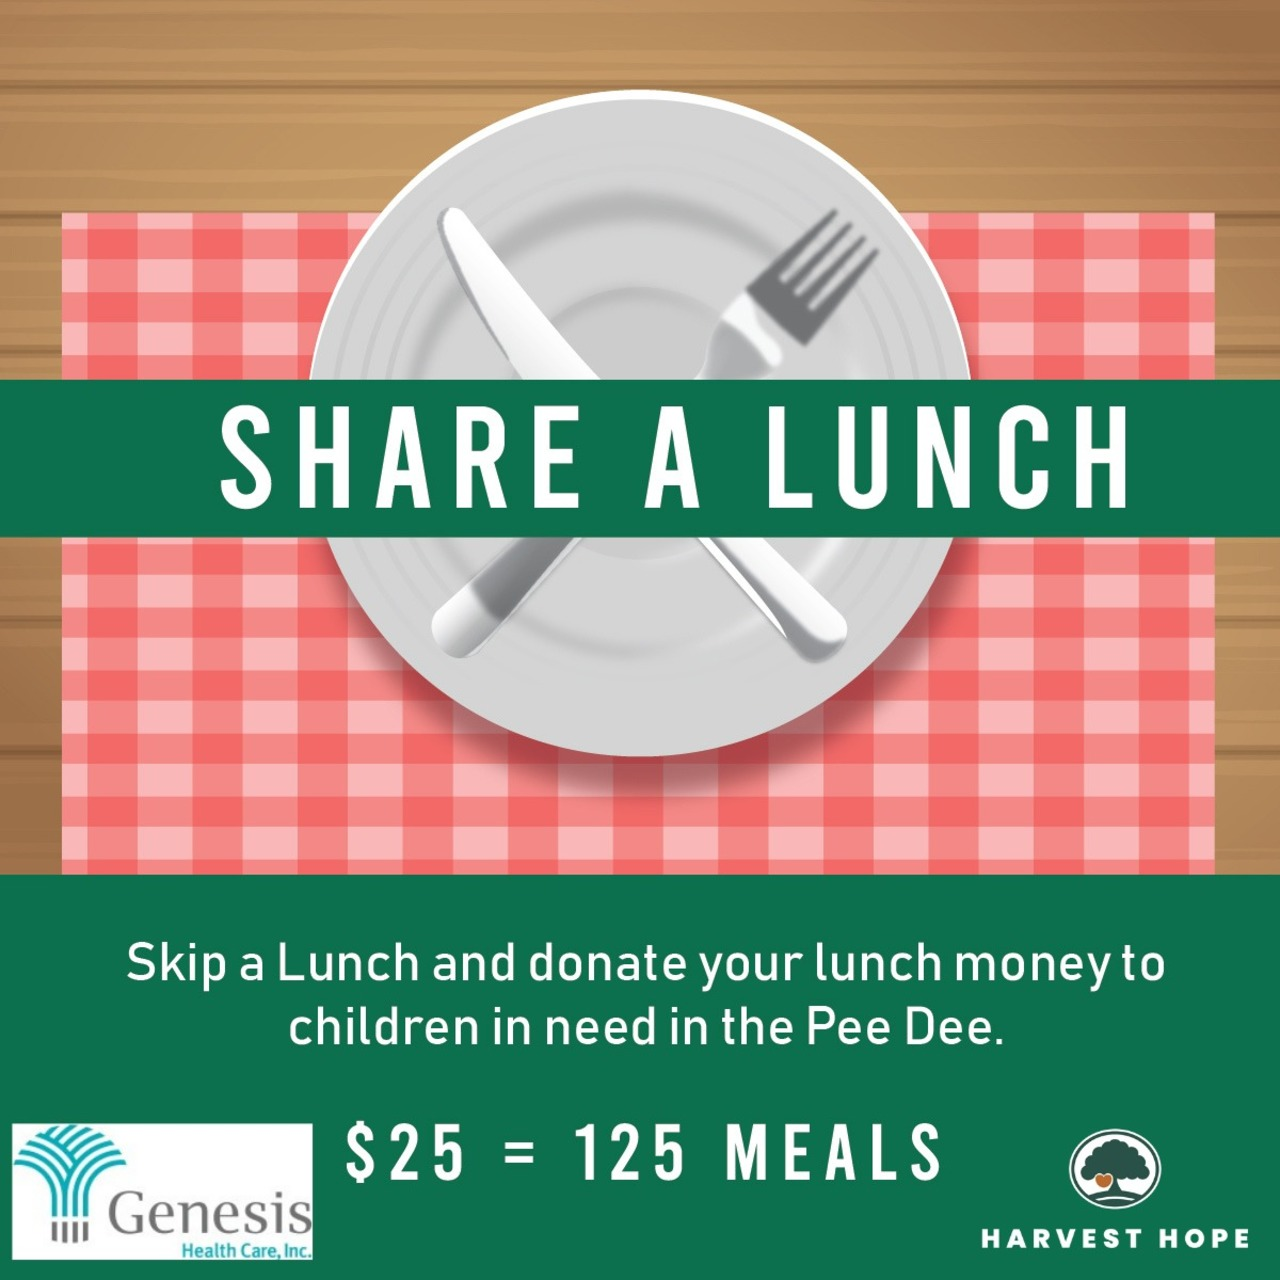 Genesis Healthcare's Share a Lunch Fundraiser for Harvest Hope